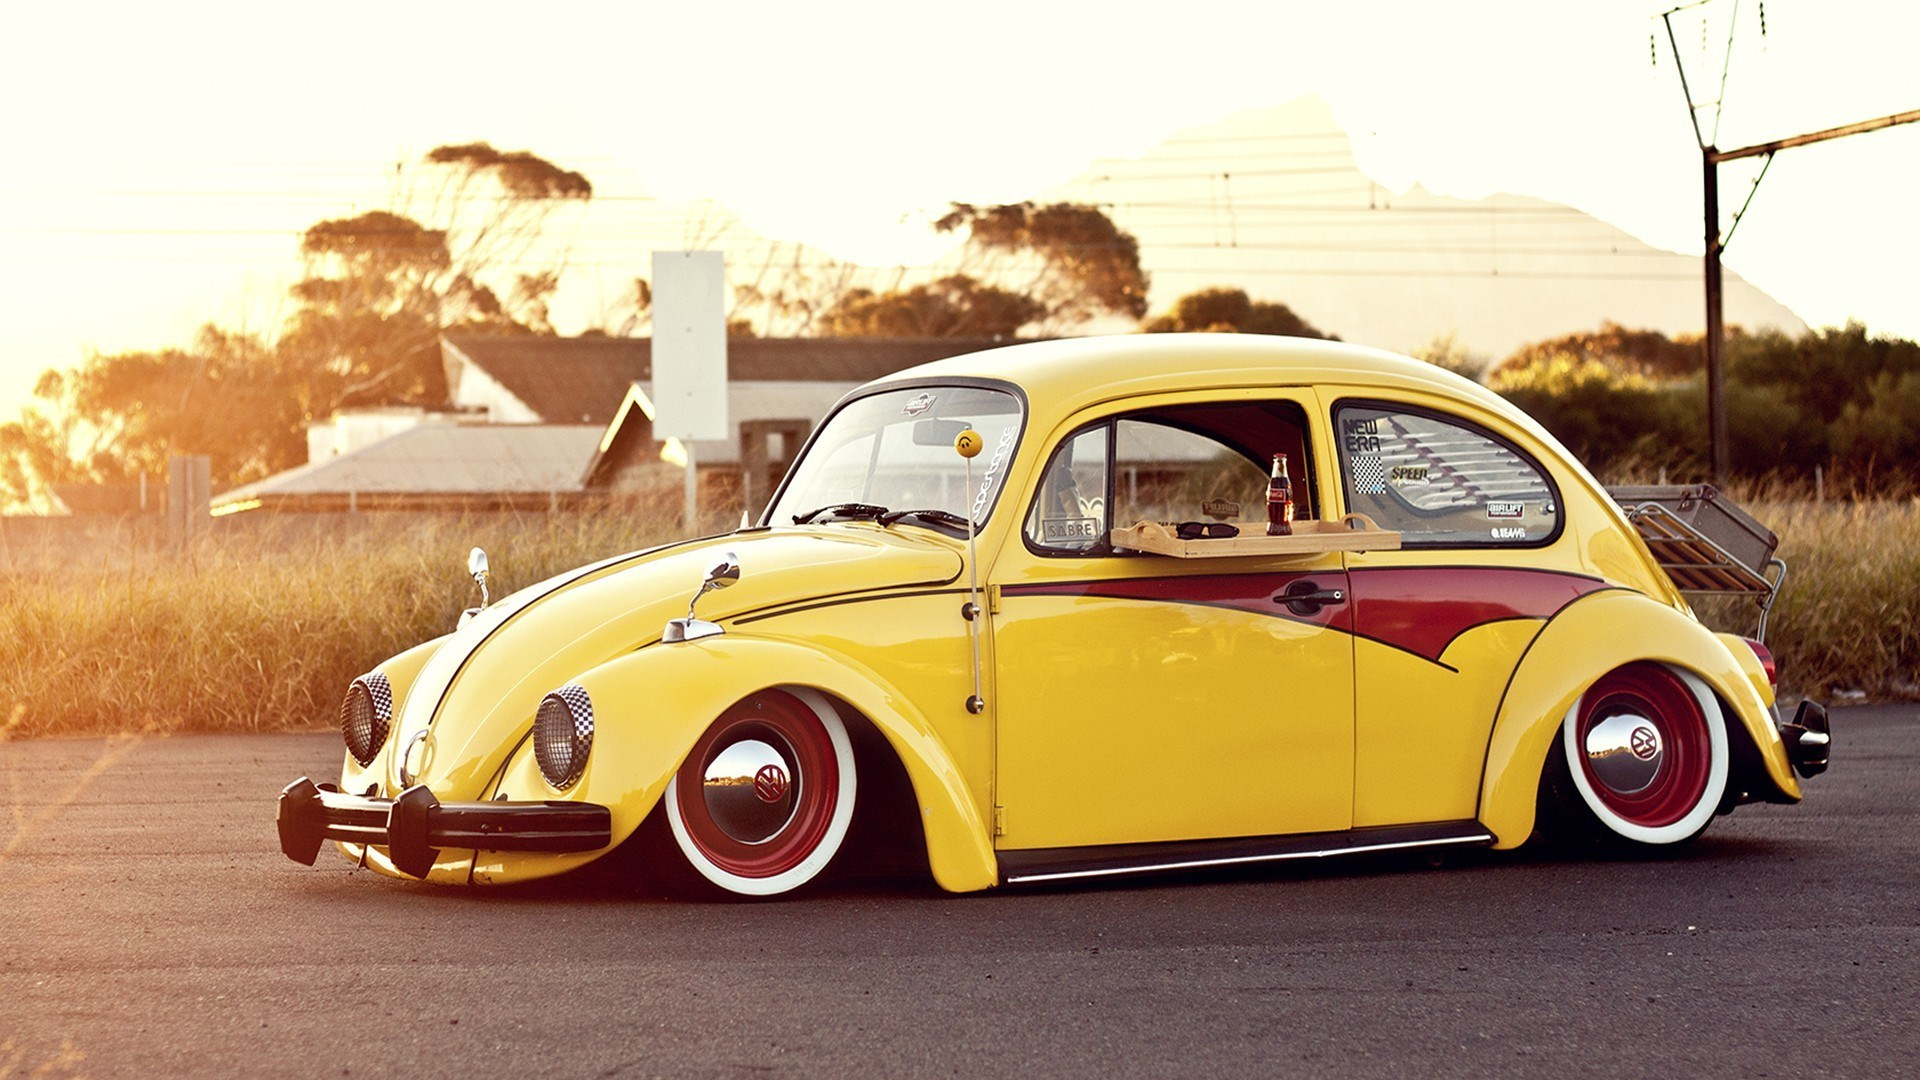 Best Volkswagen Beetle Wallpaper for iPhone